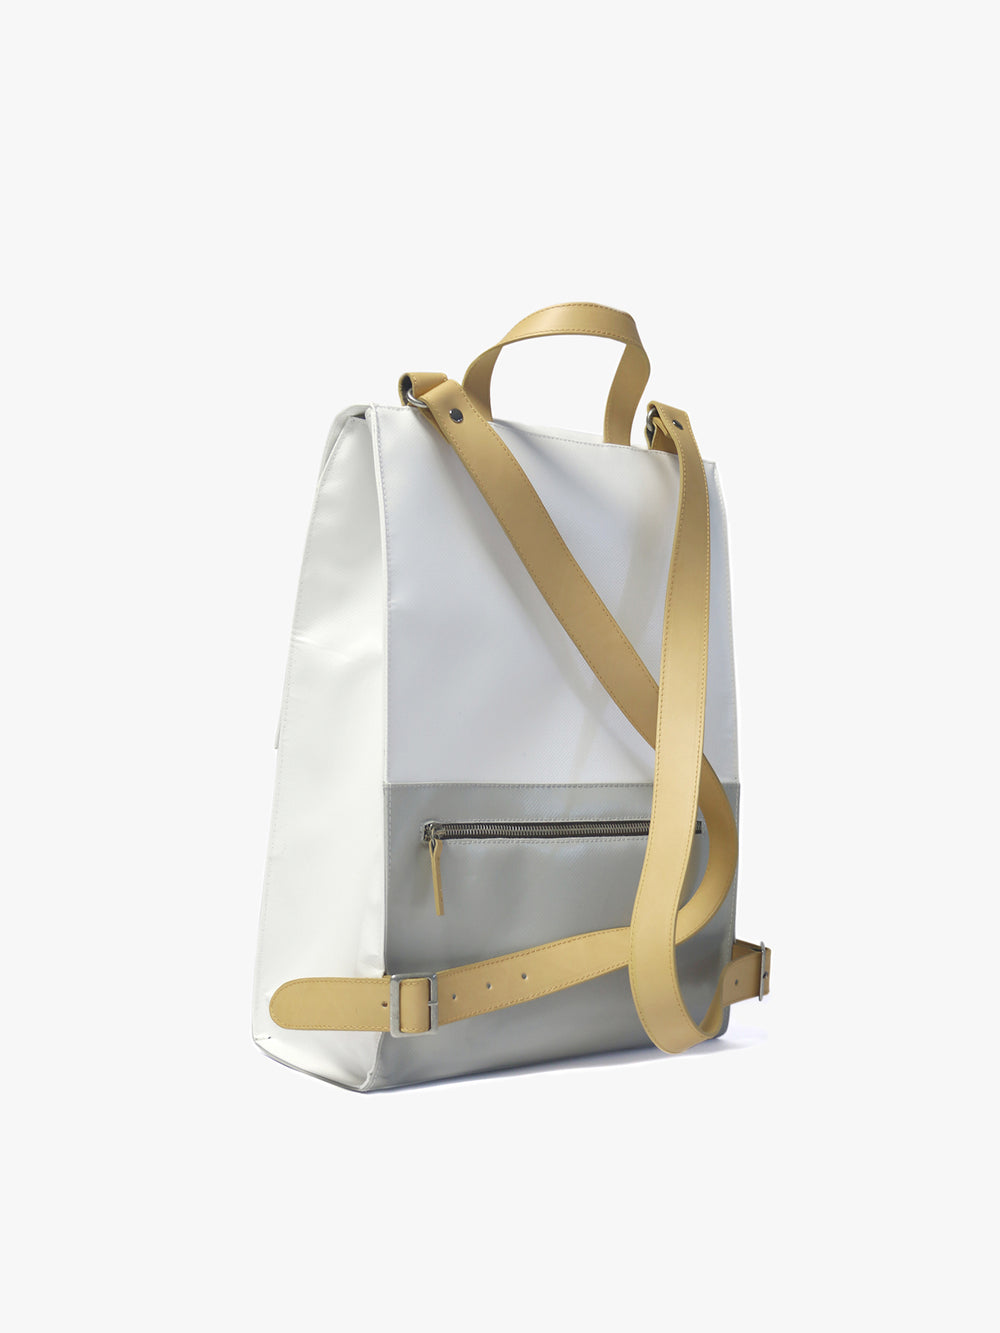 Urban laptop backpack in white and grey combinations of recycled tarps